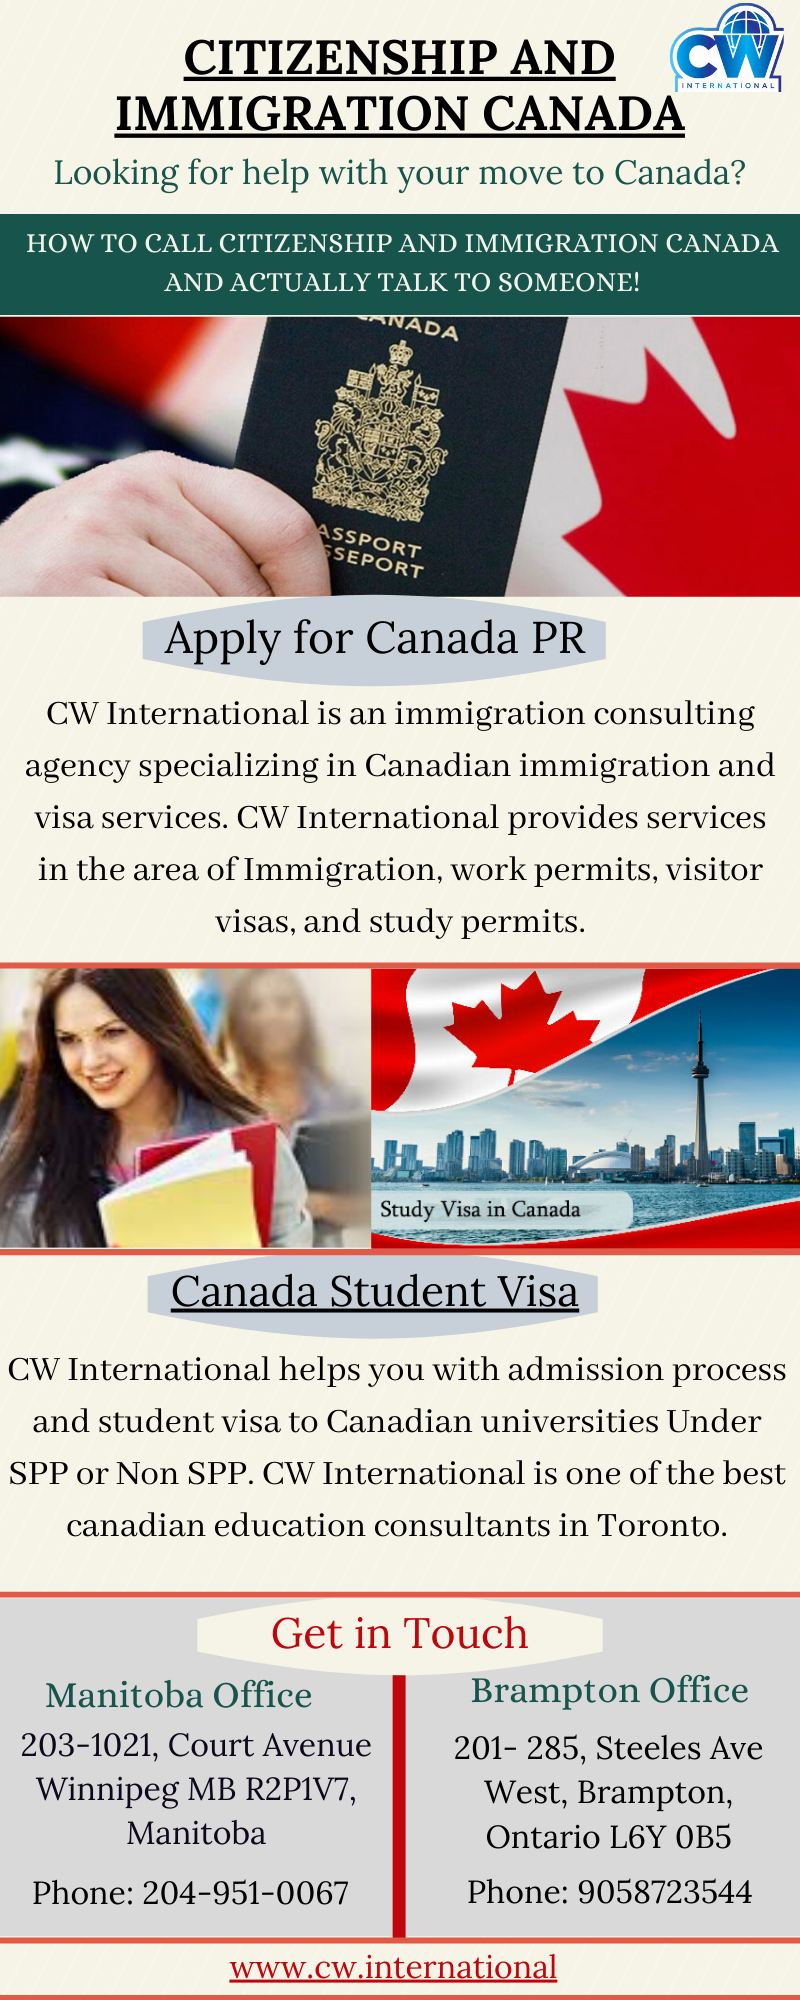 fbde9b90894452be868d83ca3bd0a8da - How Long Does It Take To Get Canadian Immigration